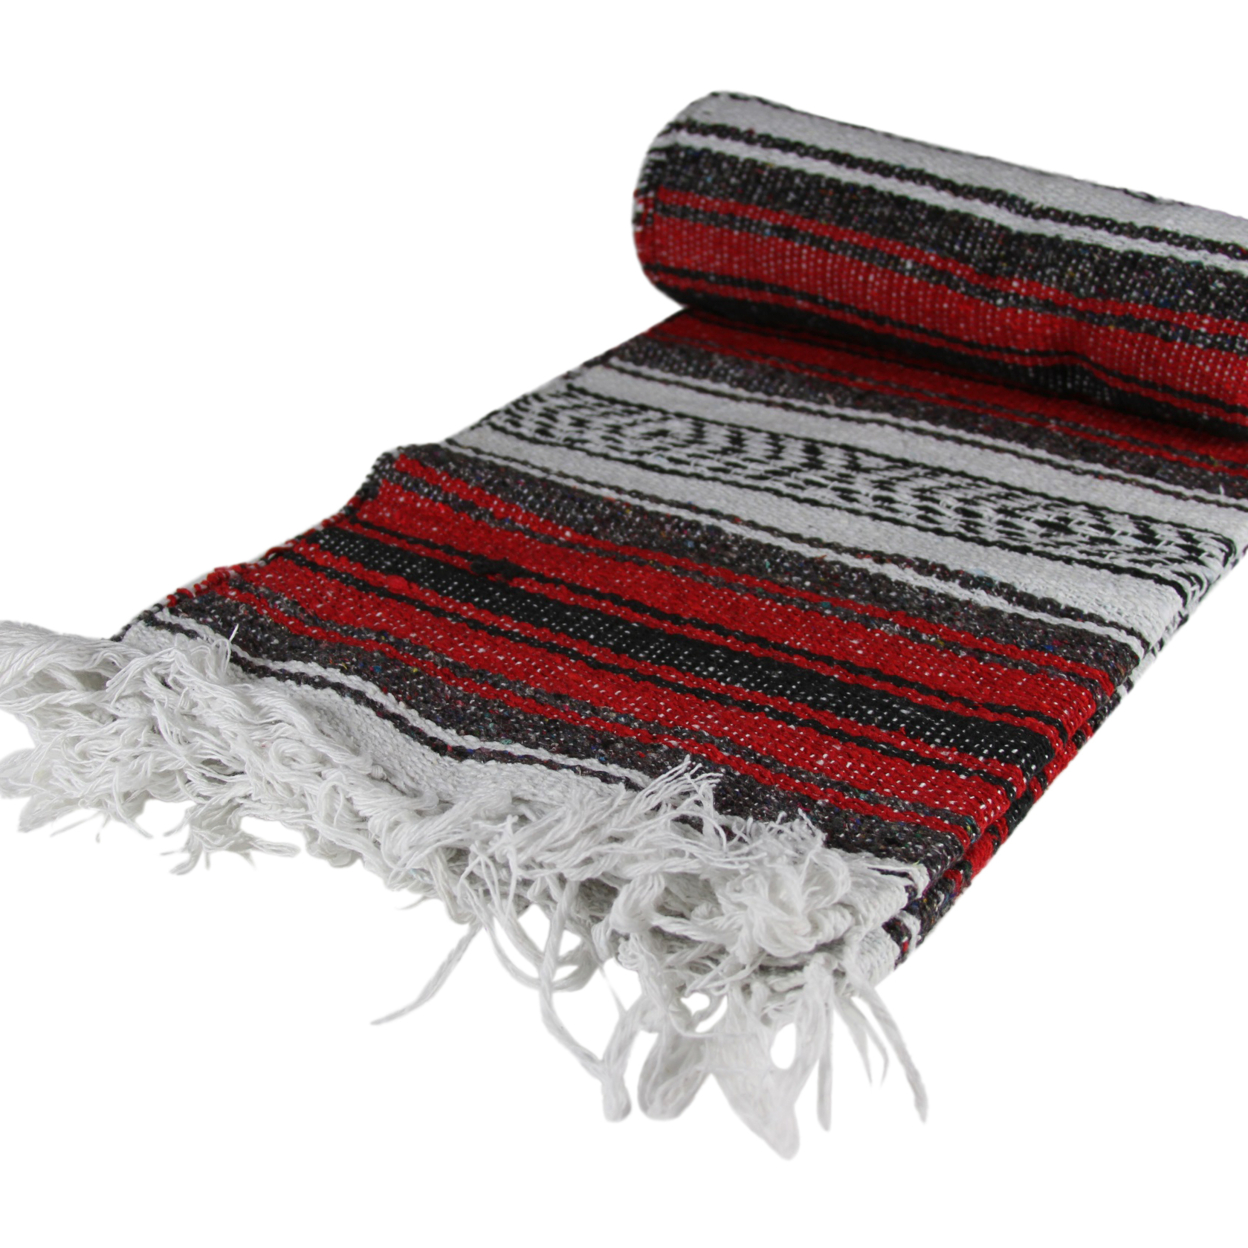 Mexican Falsa Yoga Handmade Imported Blanket Assorted Throw Red